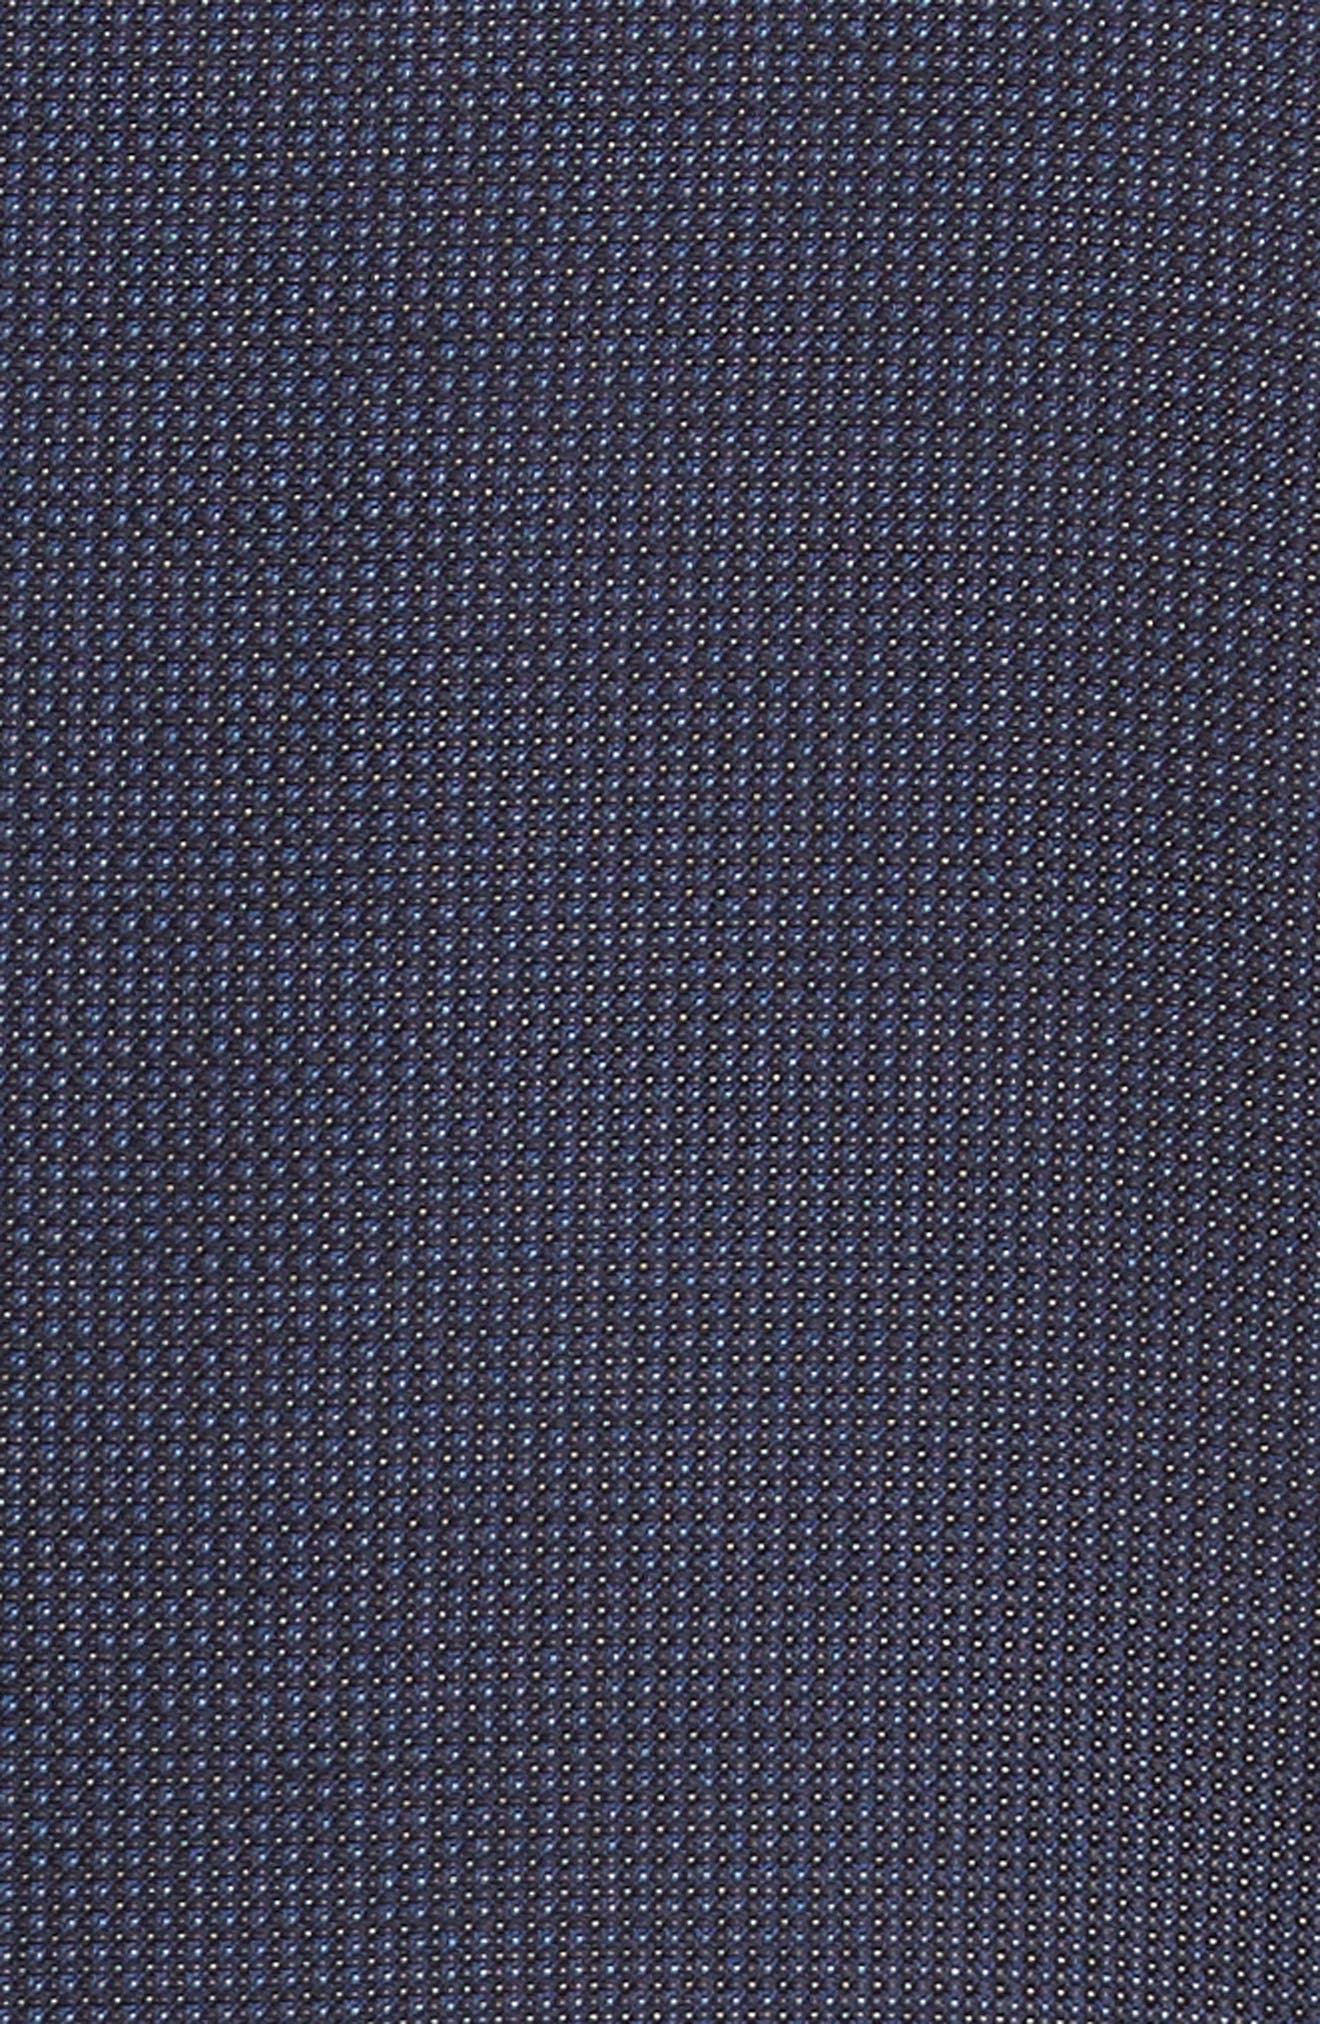 Roger Extra Slim Fit Solid Wool Suit,                             Alternate thumbnail 7, color,                             410